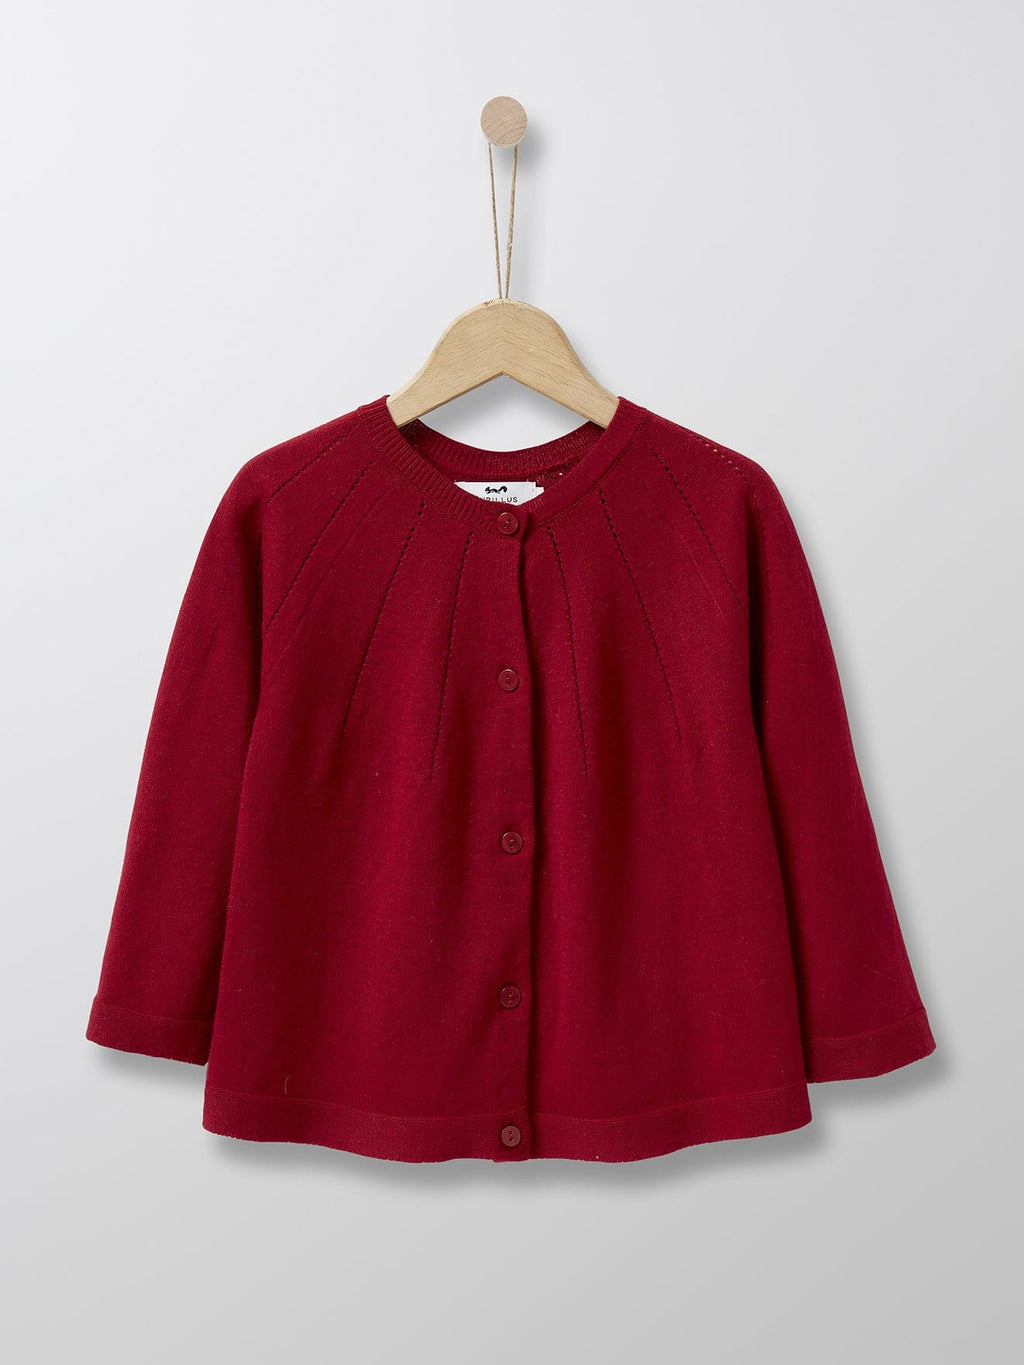 Cyrillus Paris | Girl's Pointelle Cardigan | Cotton + Cashmere | Dark Red | 3Y, 4Y, 6Y